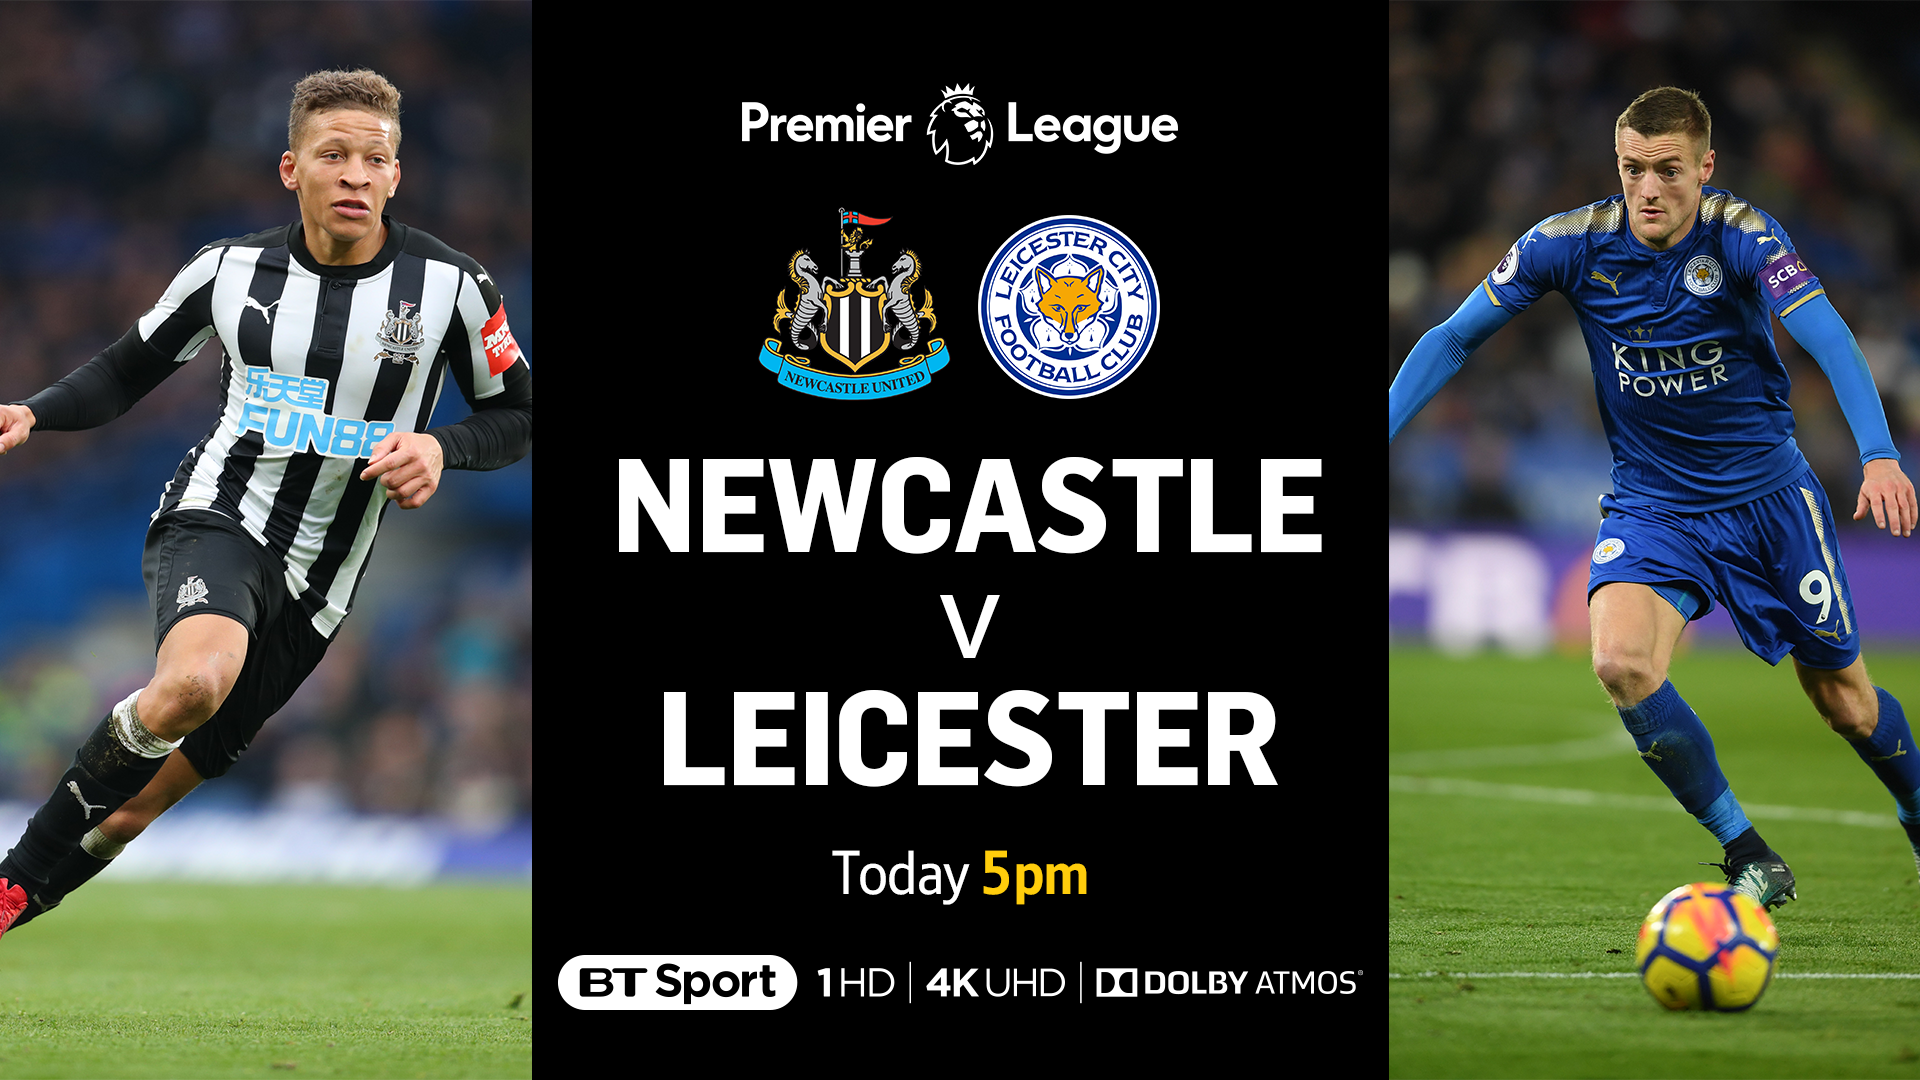 RT @btsportfootball: Newcastle vs. Leicester 🙌 BT Sport 1 HD and 4K UHD 📺 5pm ⏰  Join us live at St. James's Park. https://t.co/0qBHRaj7J9